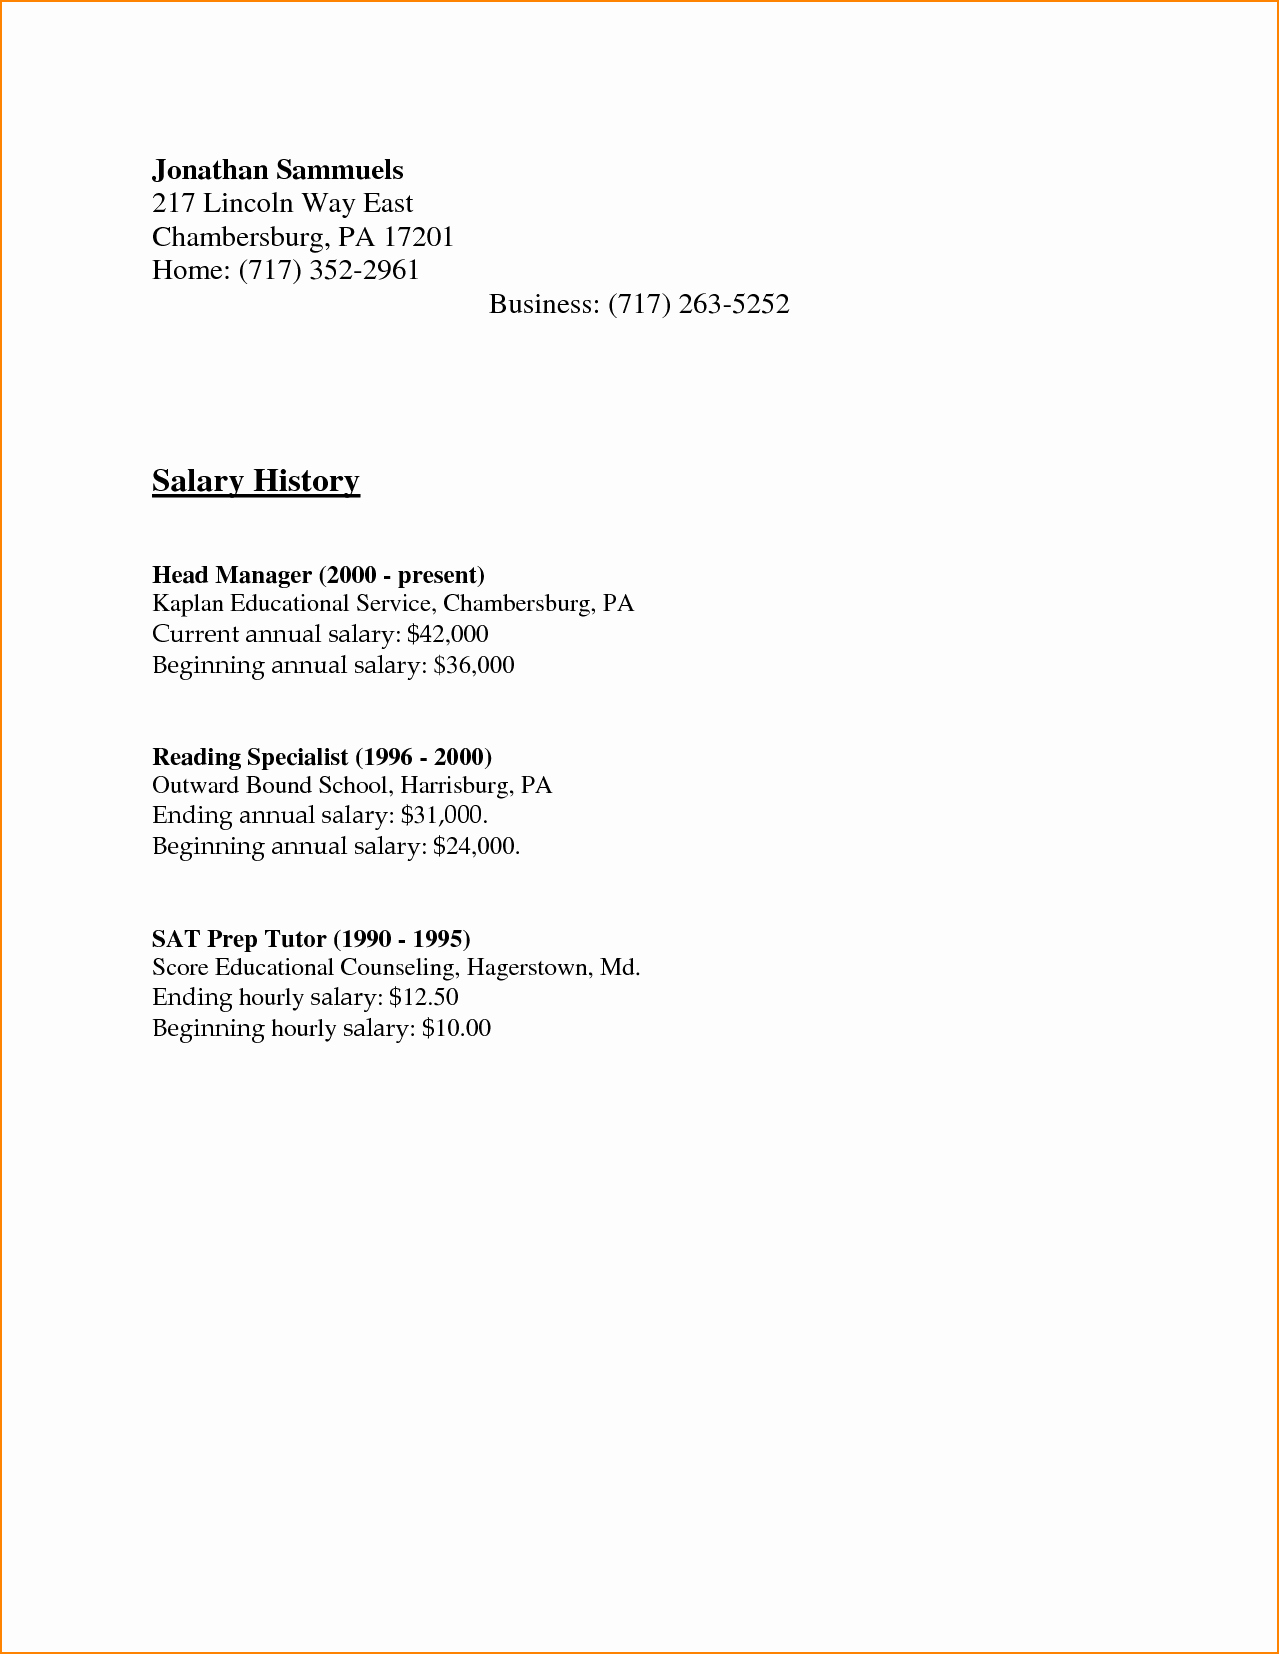 Salary History In Cover Letter Lovely 5 Sample Cover Letter with Salary History